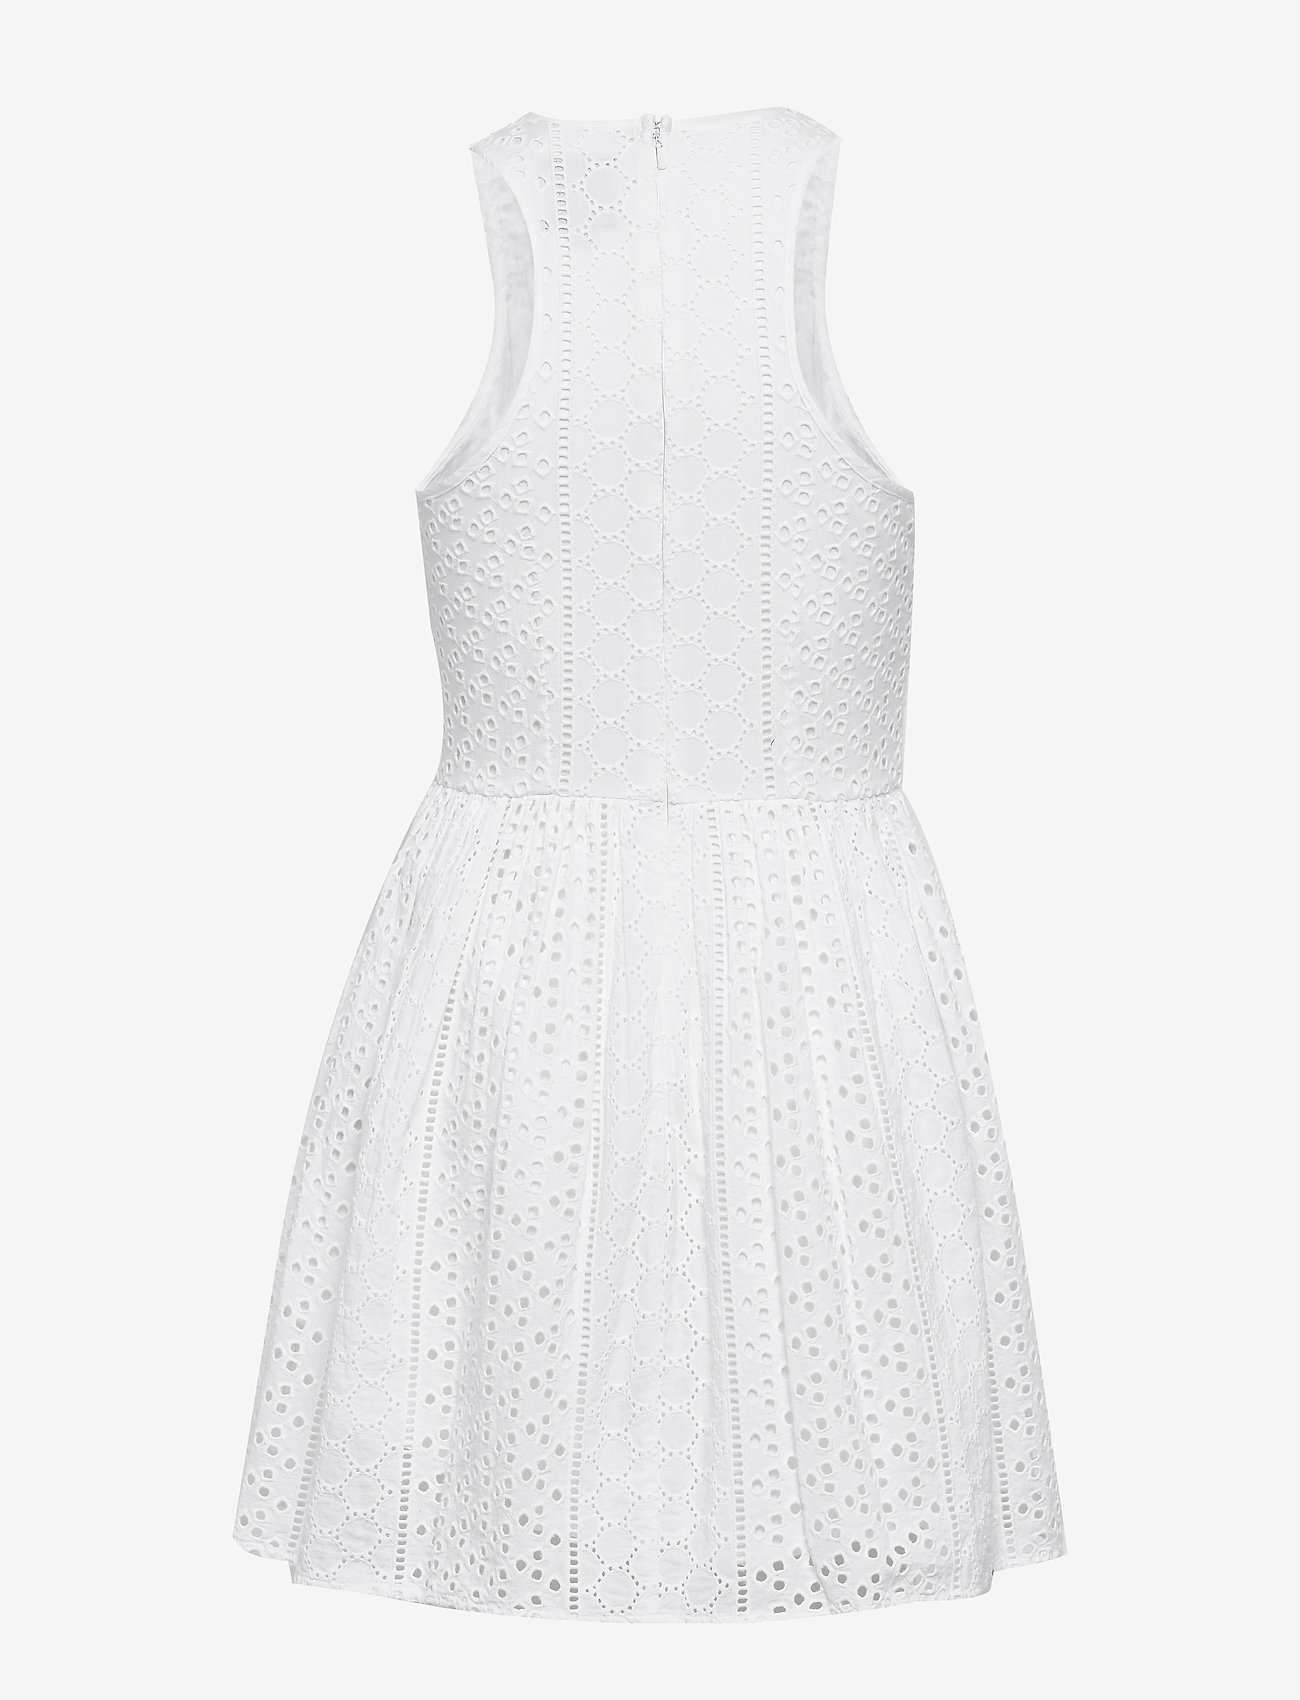 Camylla Racer Dress (Off White) - Superdry xTyMXZ